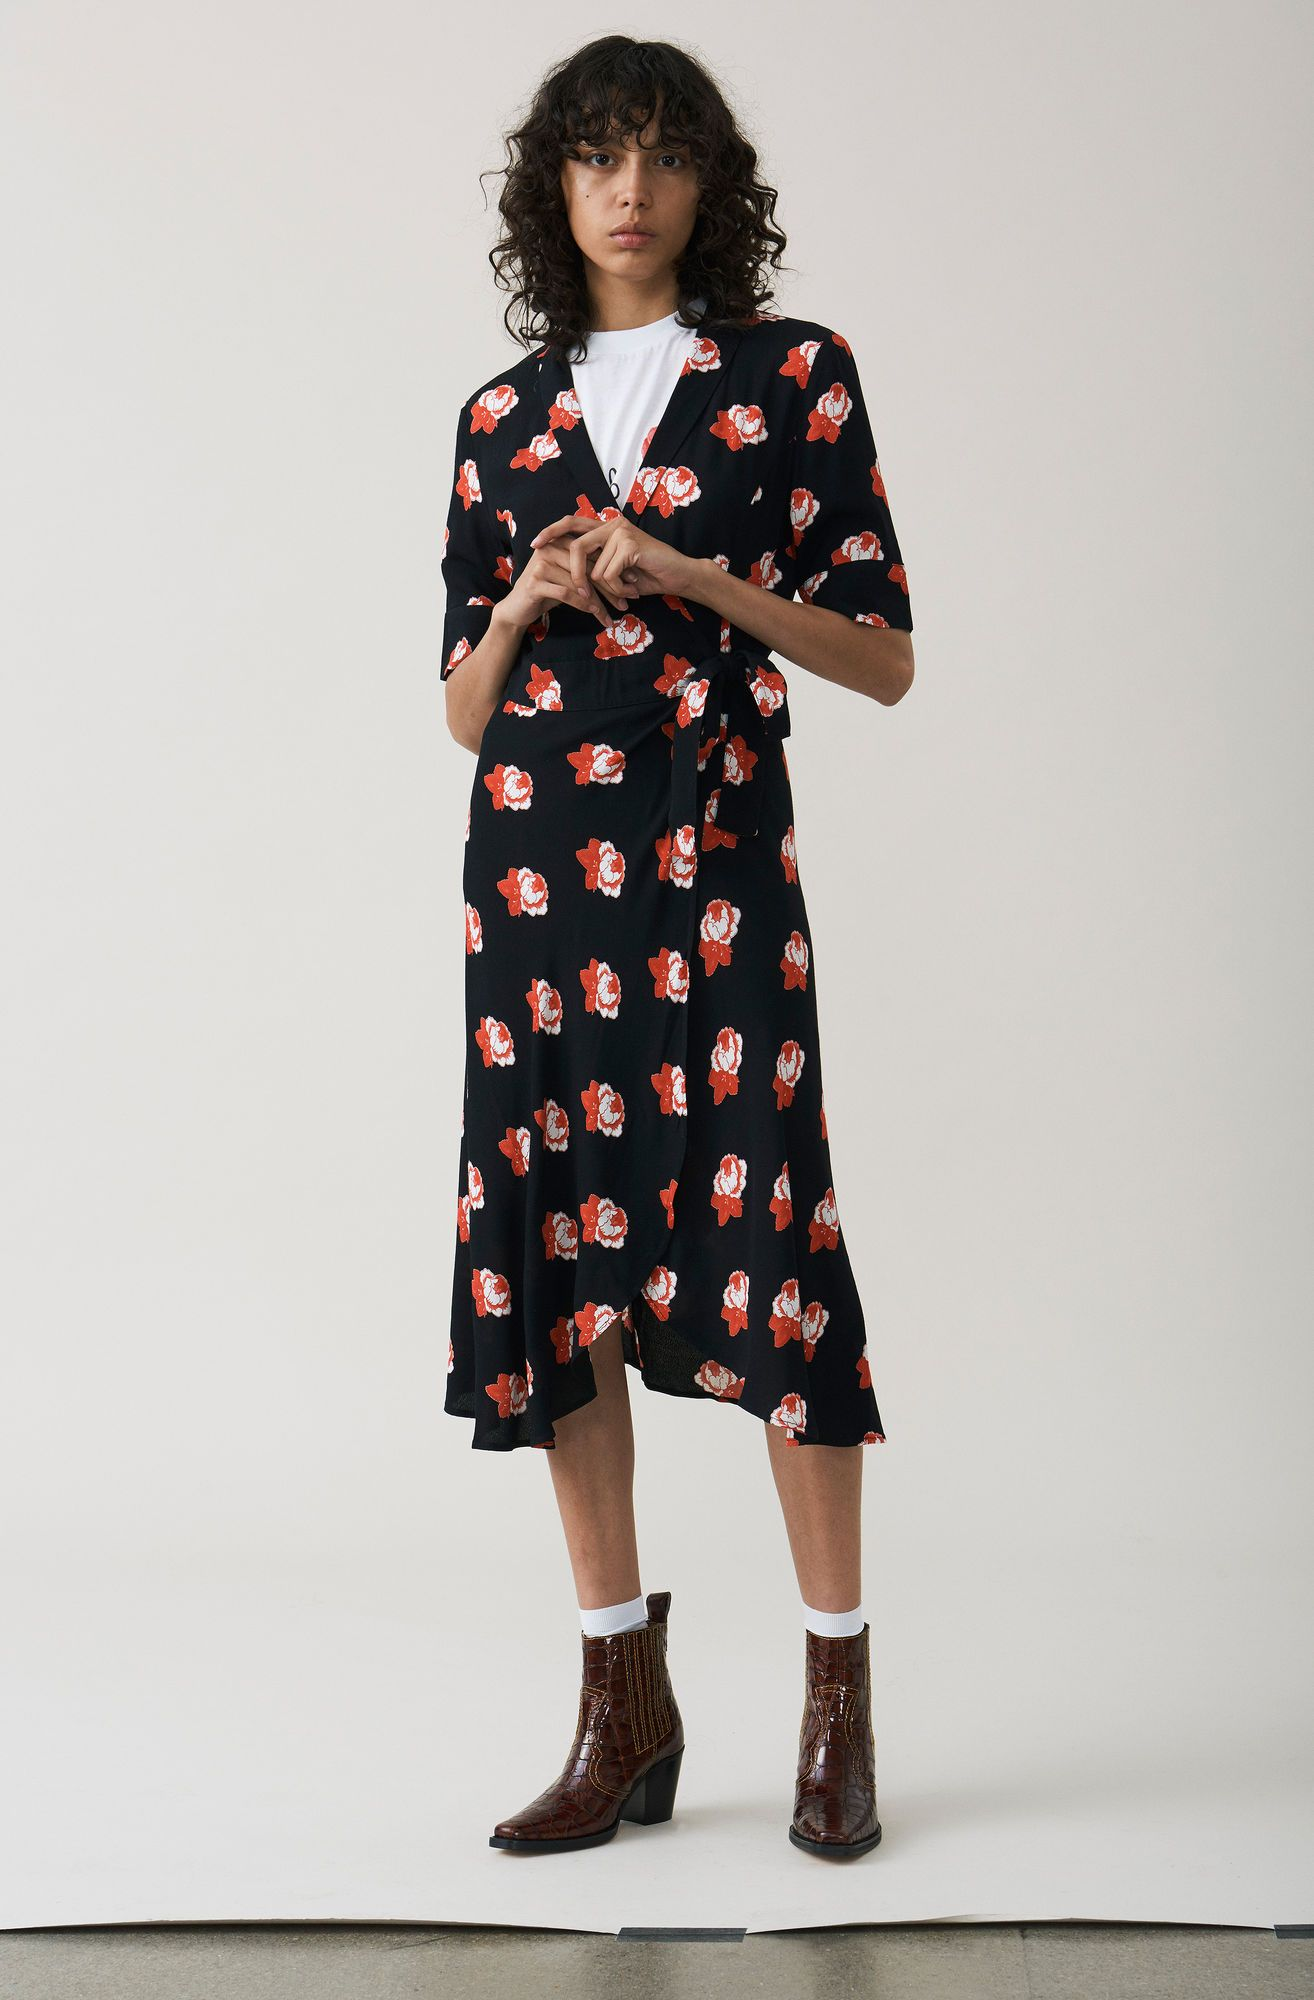 da844caffd58 Flattering wrap dress with a tea dress cut and roomy t-shirt sleeves  finished with a concealed waist belt and delicate frill details.